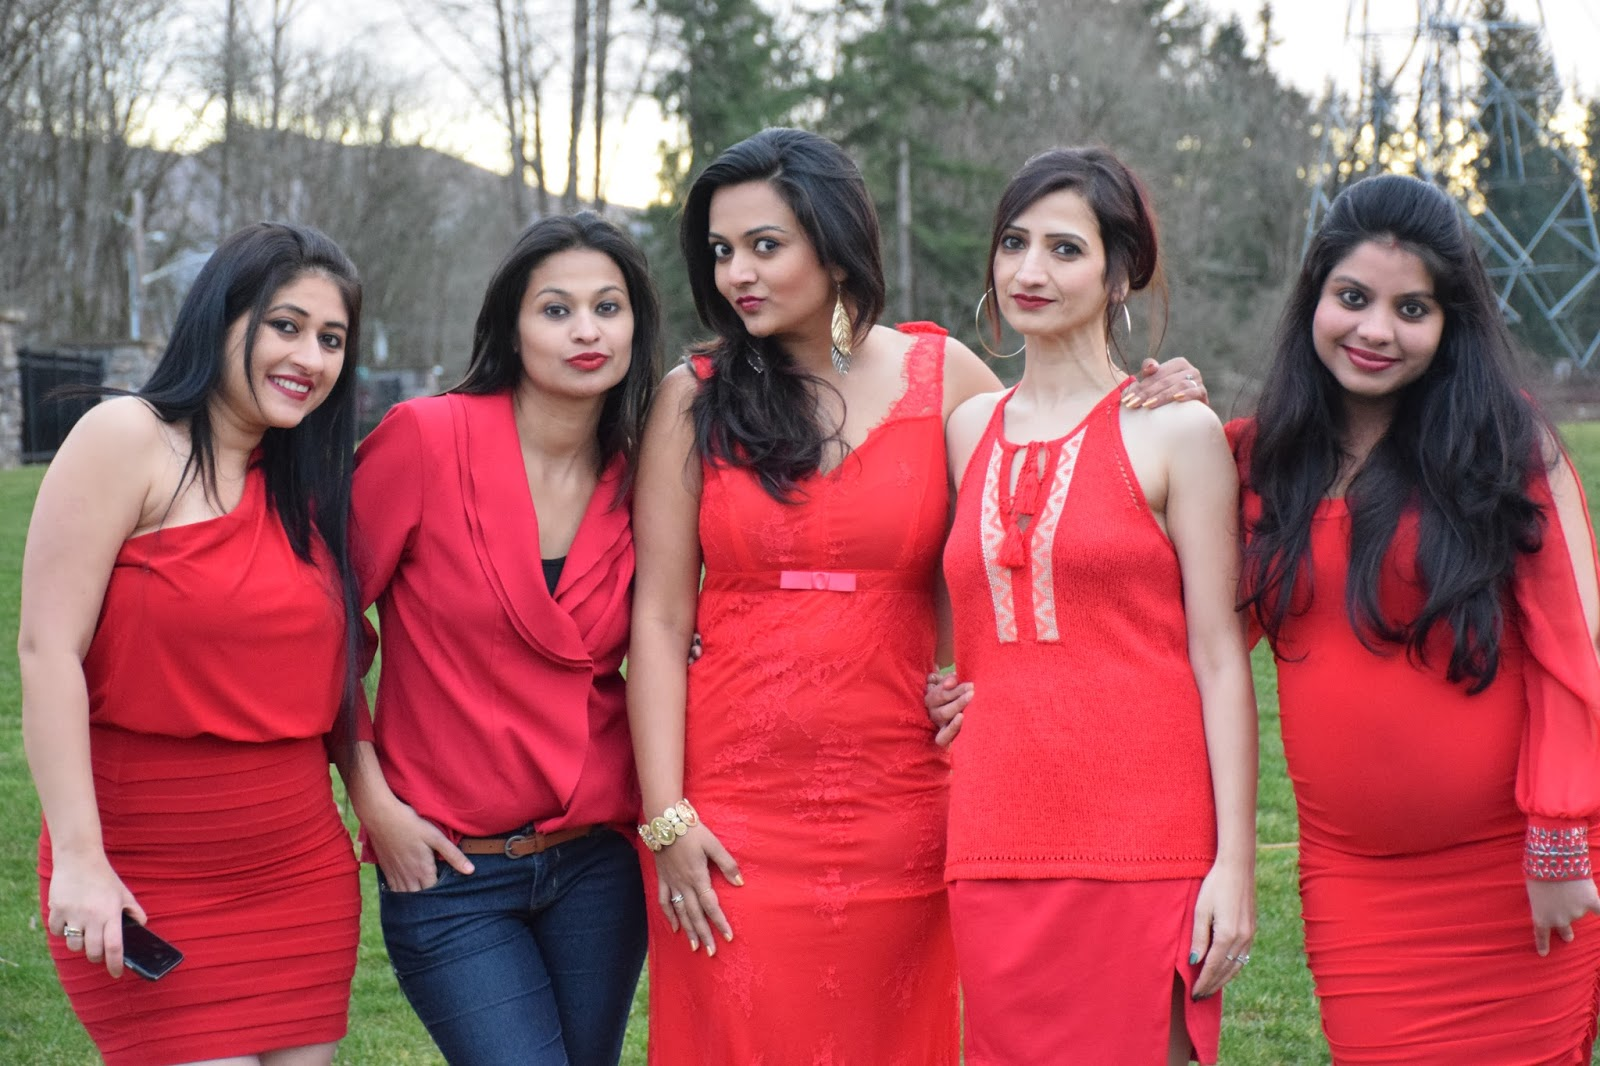 gals all wearing red dress, group pic of indian gals, different types of red dresses, Seattle indian ladies, red lipstick on brown skin